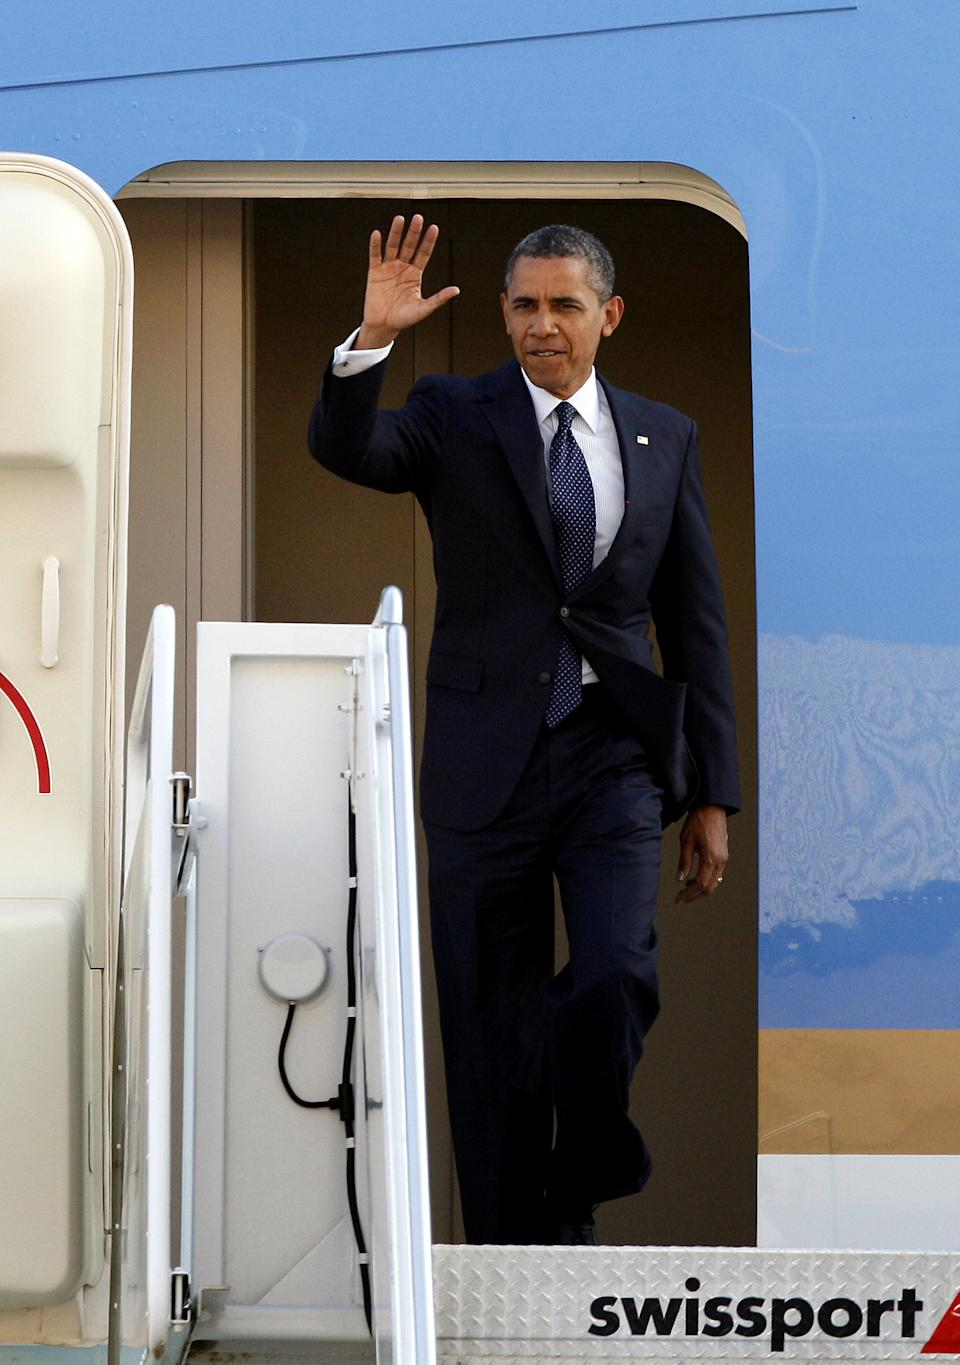 President Barack Obama arrives at JFK International Airport in New York, Wednesday, Aug. 22, 2012, on his way to a visit in New York City where he will attend several fundraiser events. (AP Photo/David Karp)